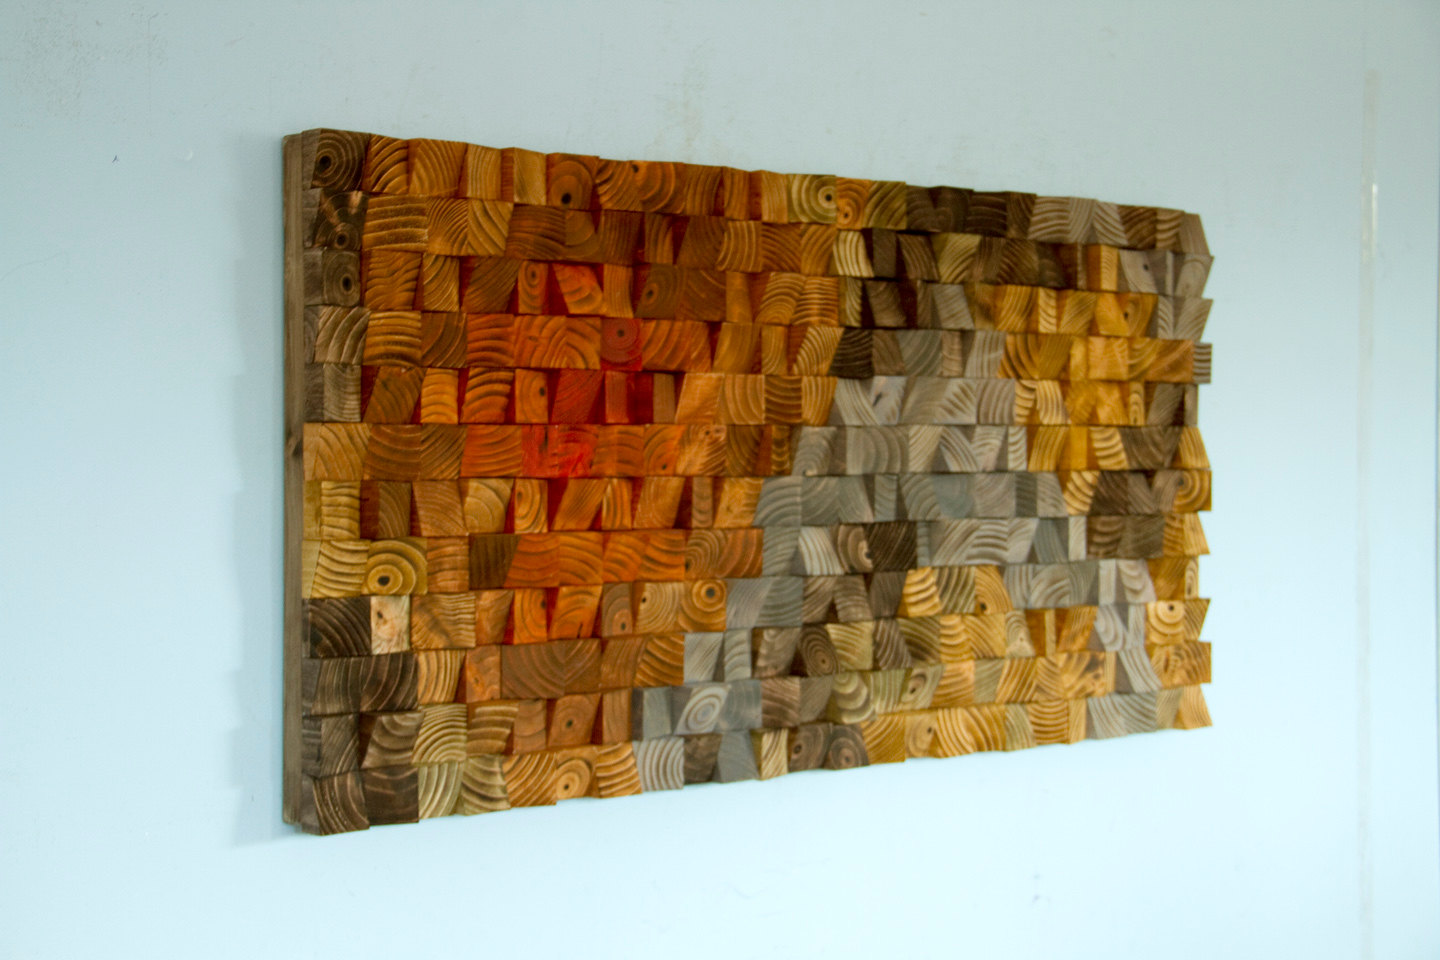 Large rustic art wood wall sculpture abstract painting on wood